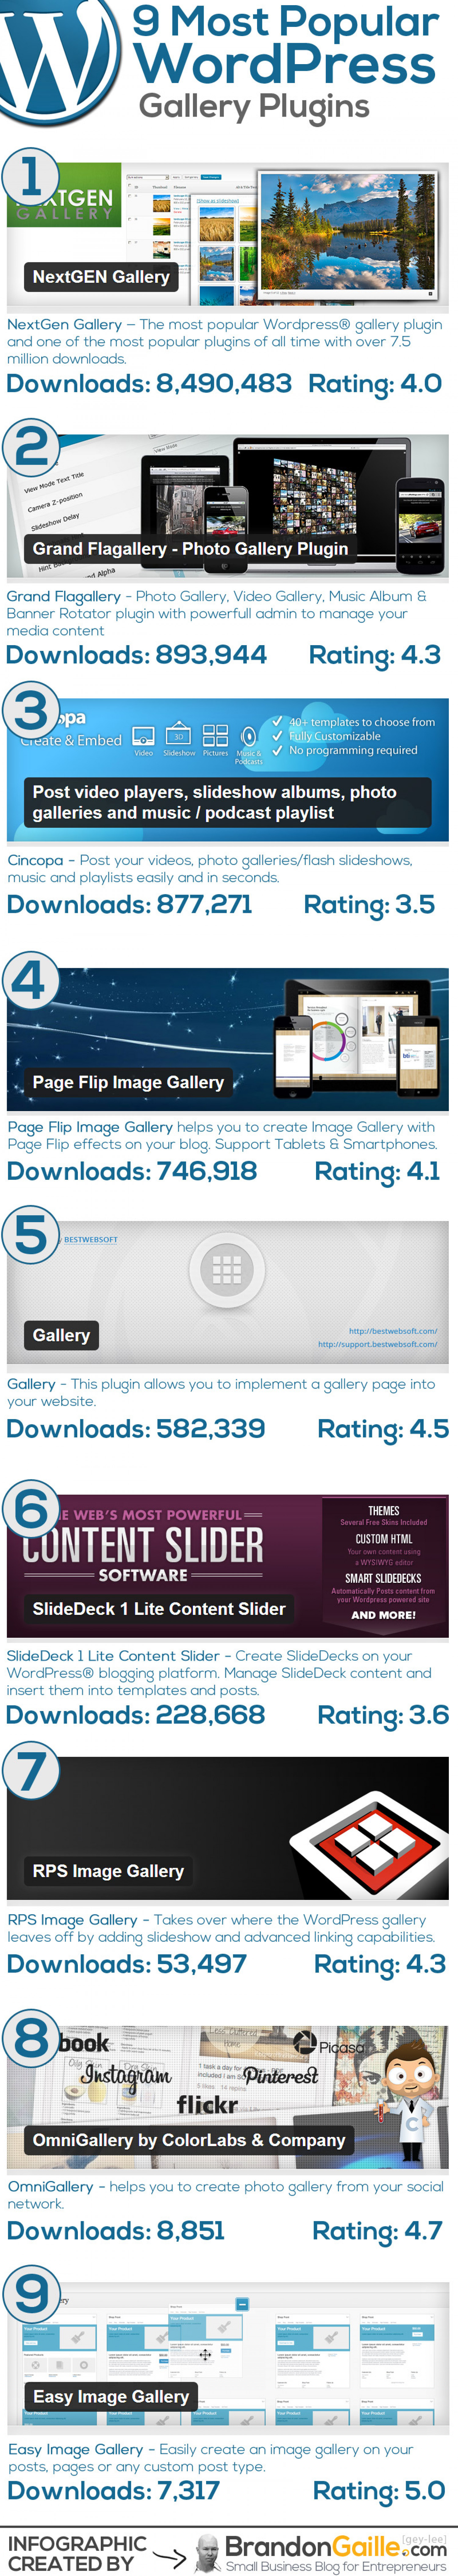 9 Most Popular WordPress Gallery Plugins Infographic